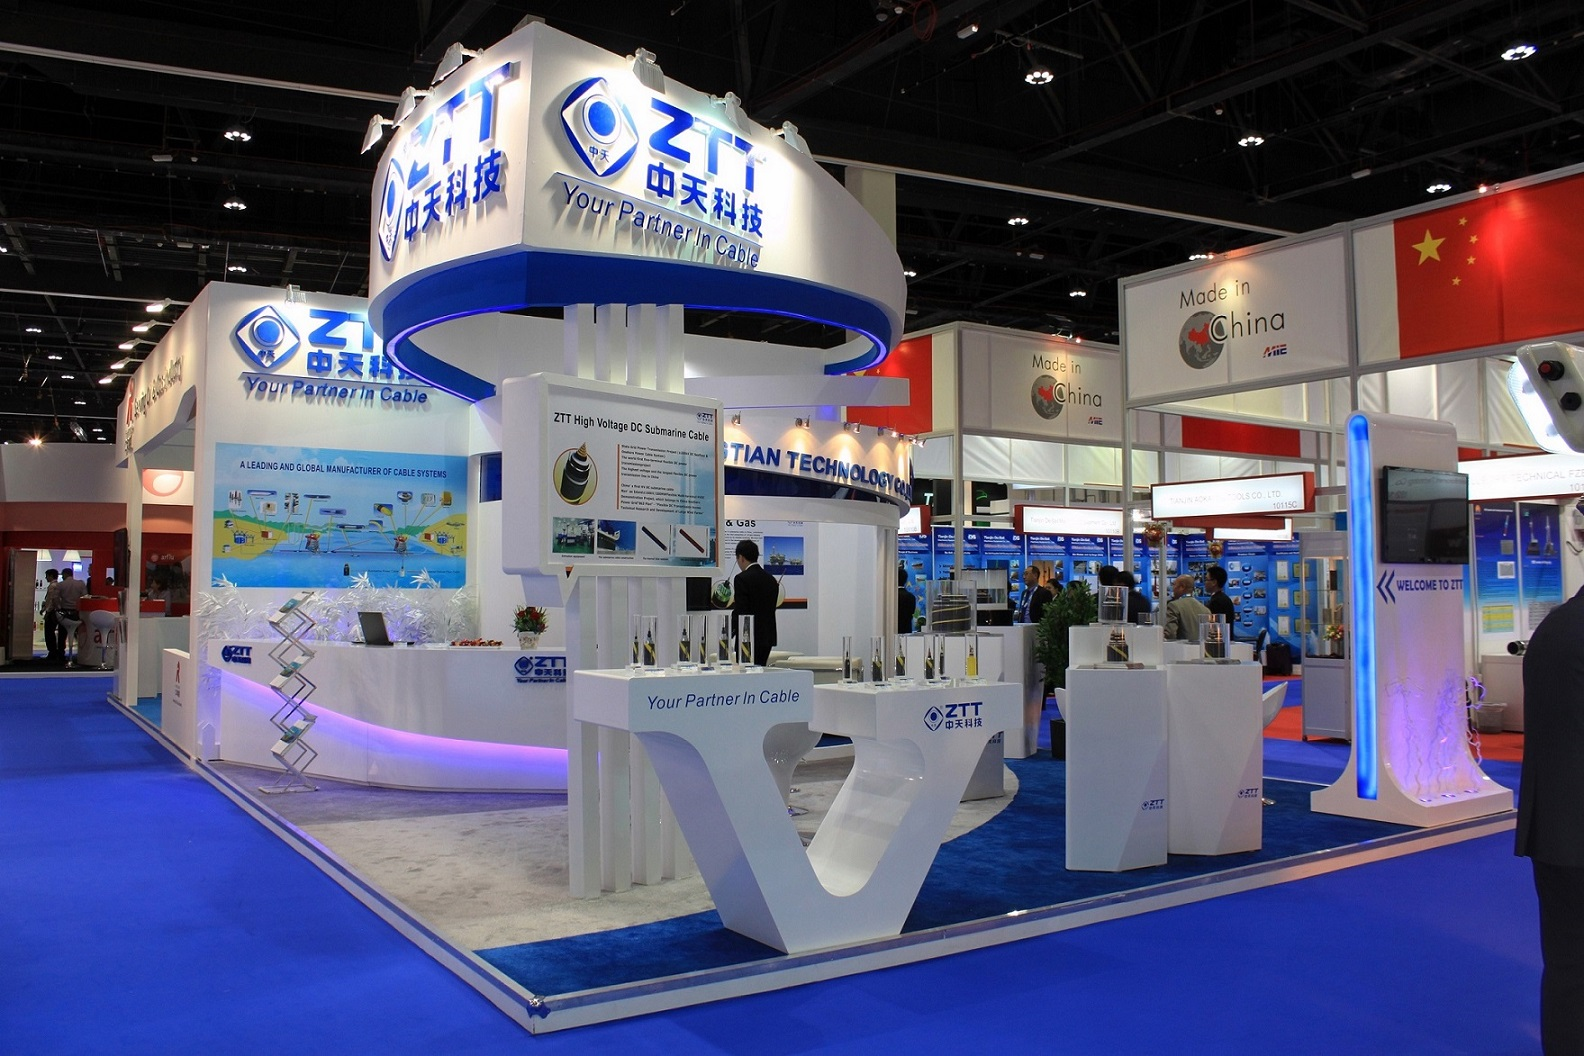 Portable Exhibition Stands Dubai : Why your exhibition display stand in dubai matters hox